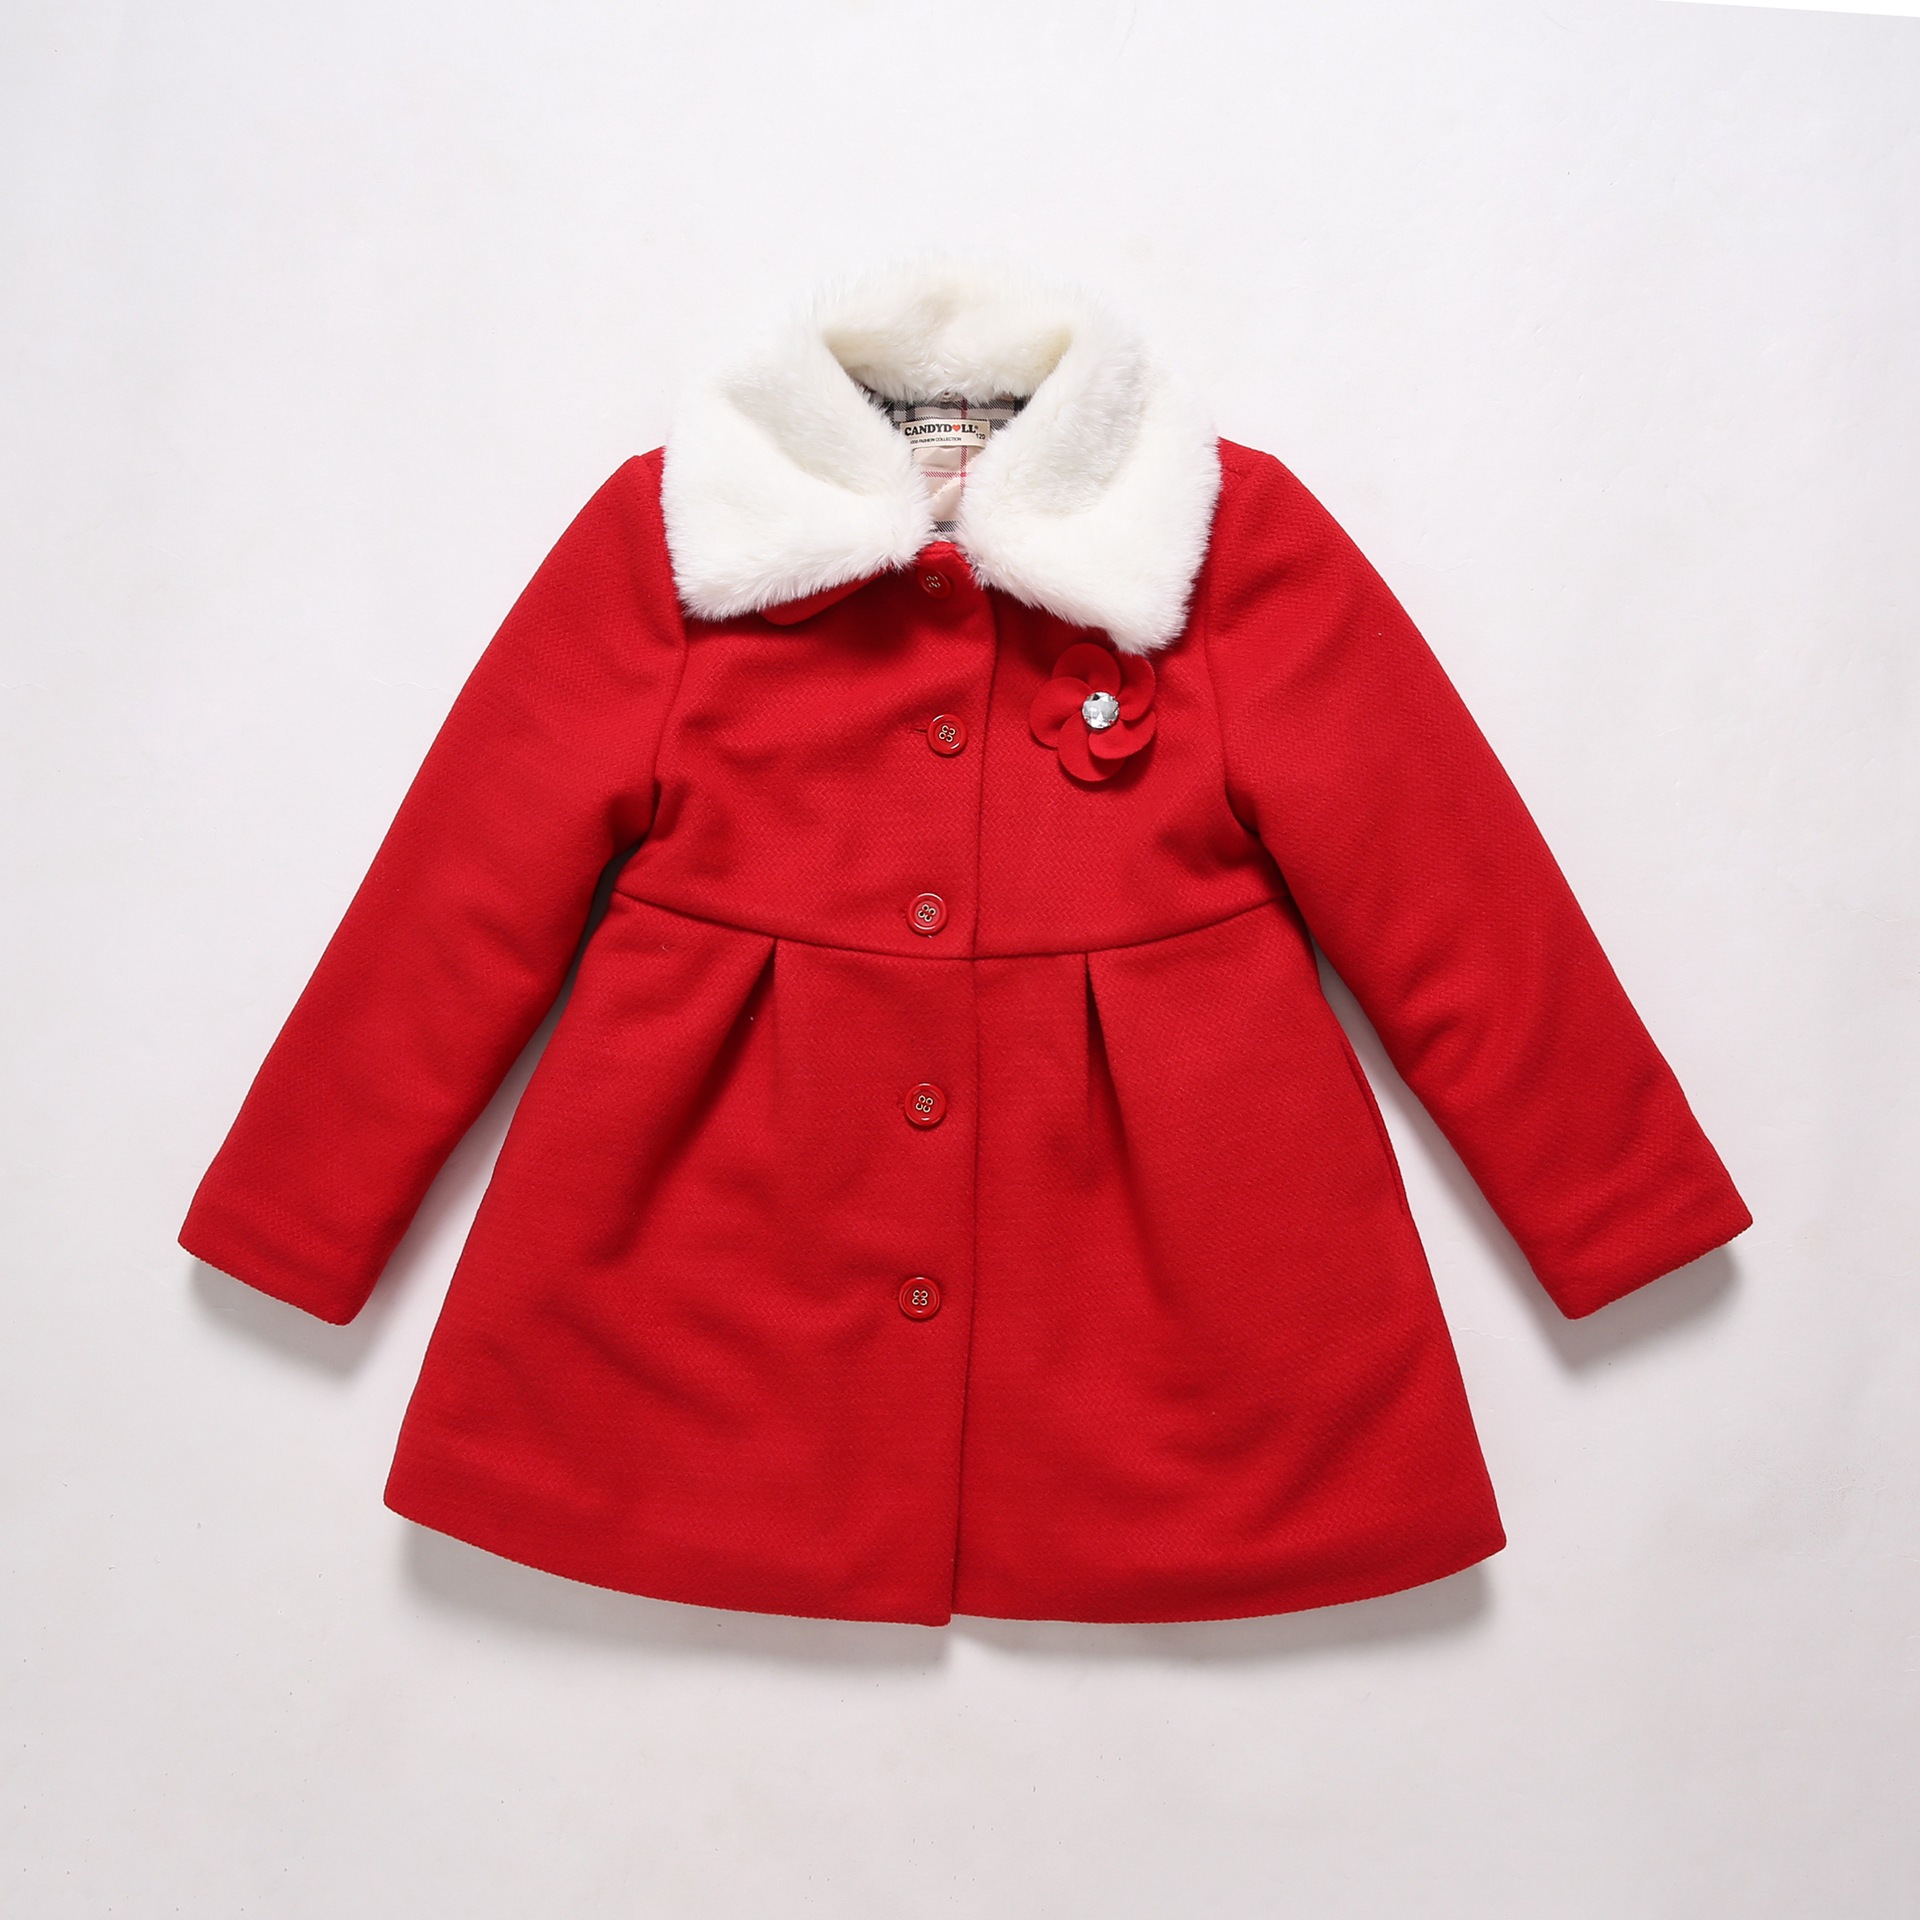 Fashion Winter Girls Coat Solid Color Red Fur Collar 2 3 4 6 8 10 ...